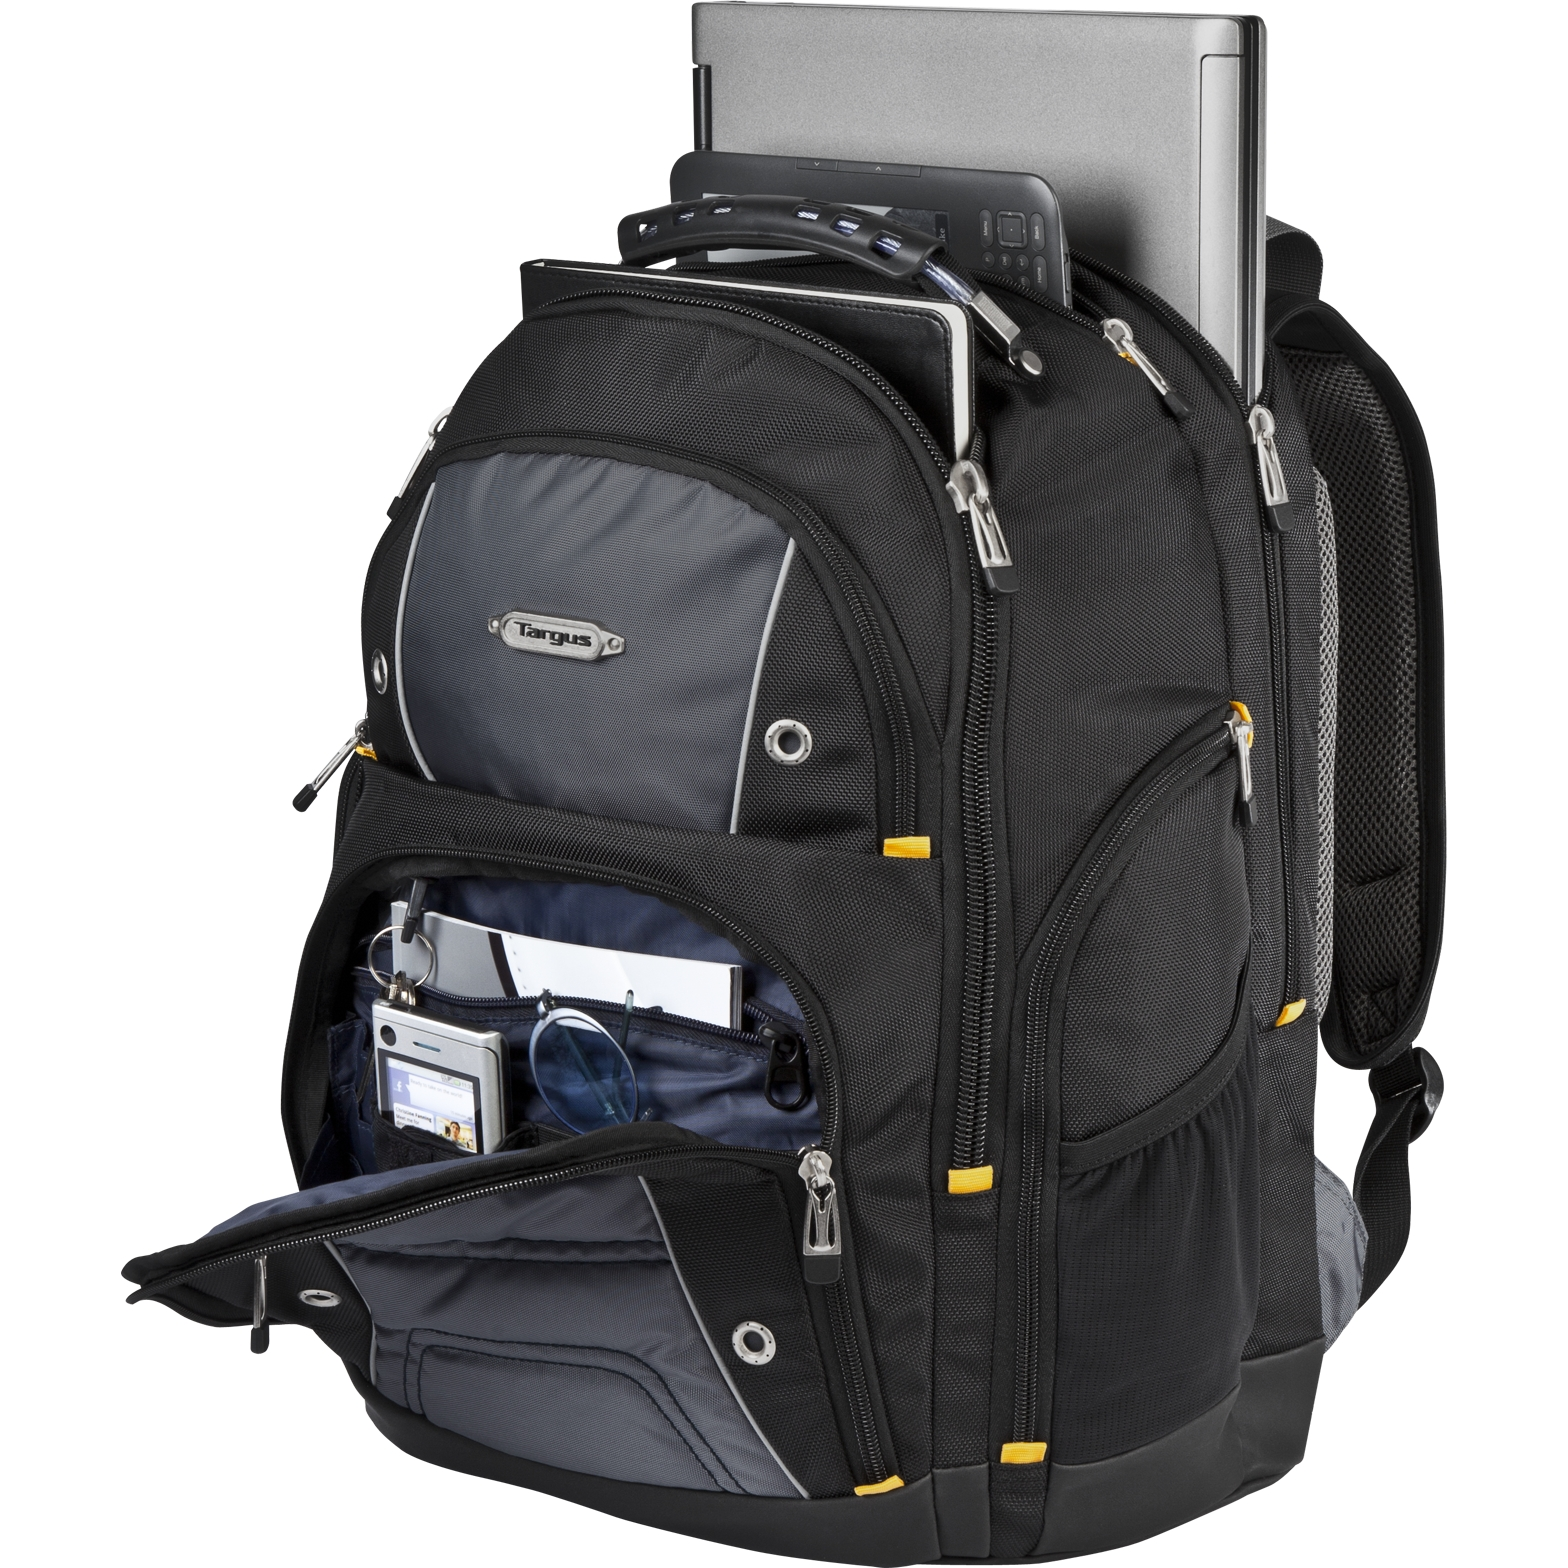 17 In Laptop Backpack I66ExhD9